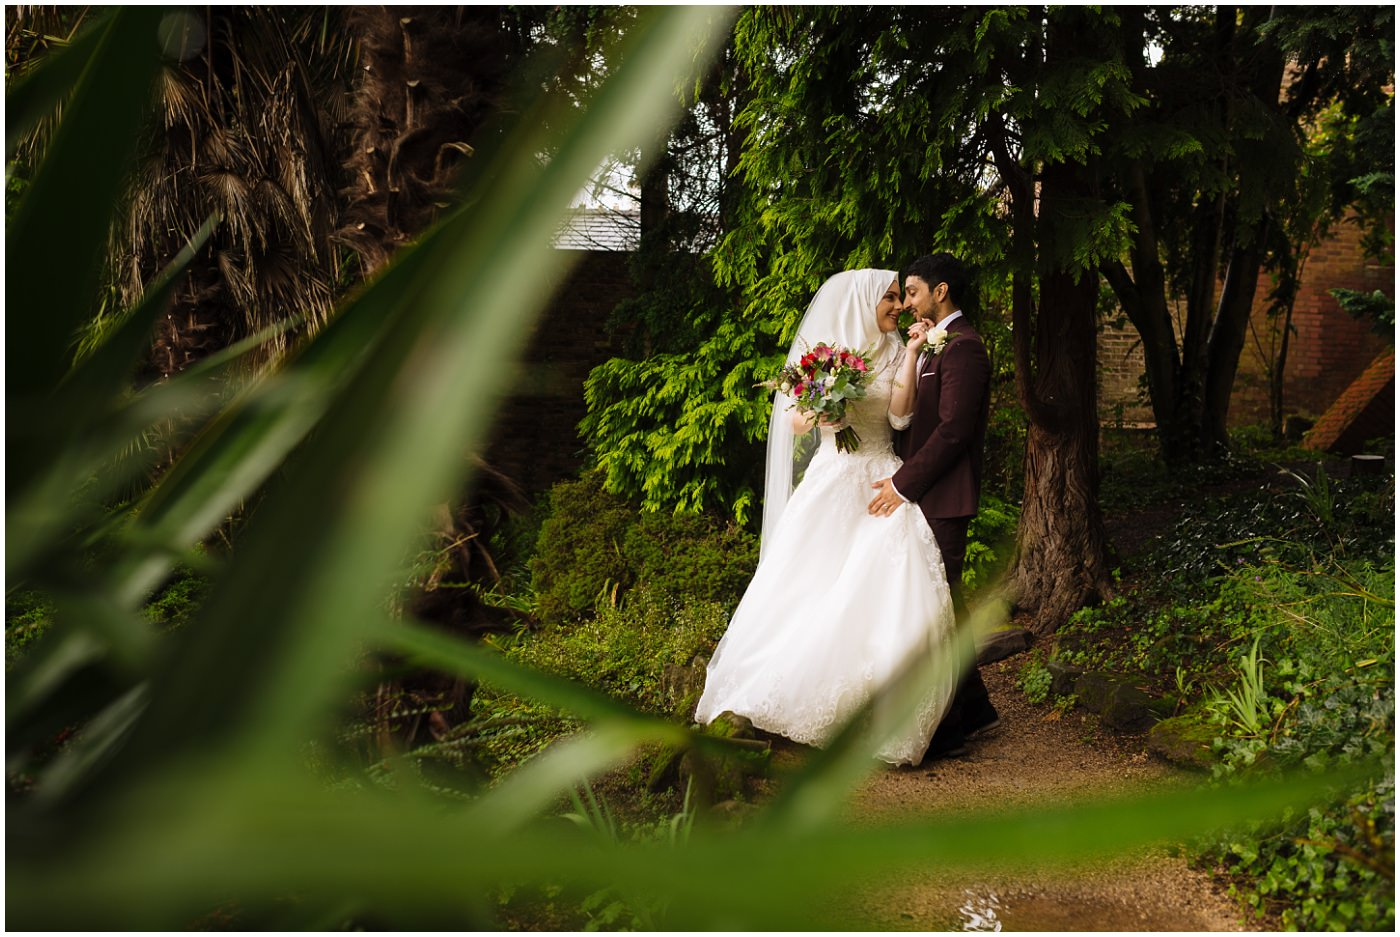 bridal portraits at fletcher moss park in didsbury